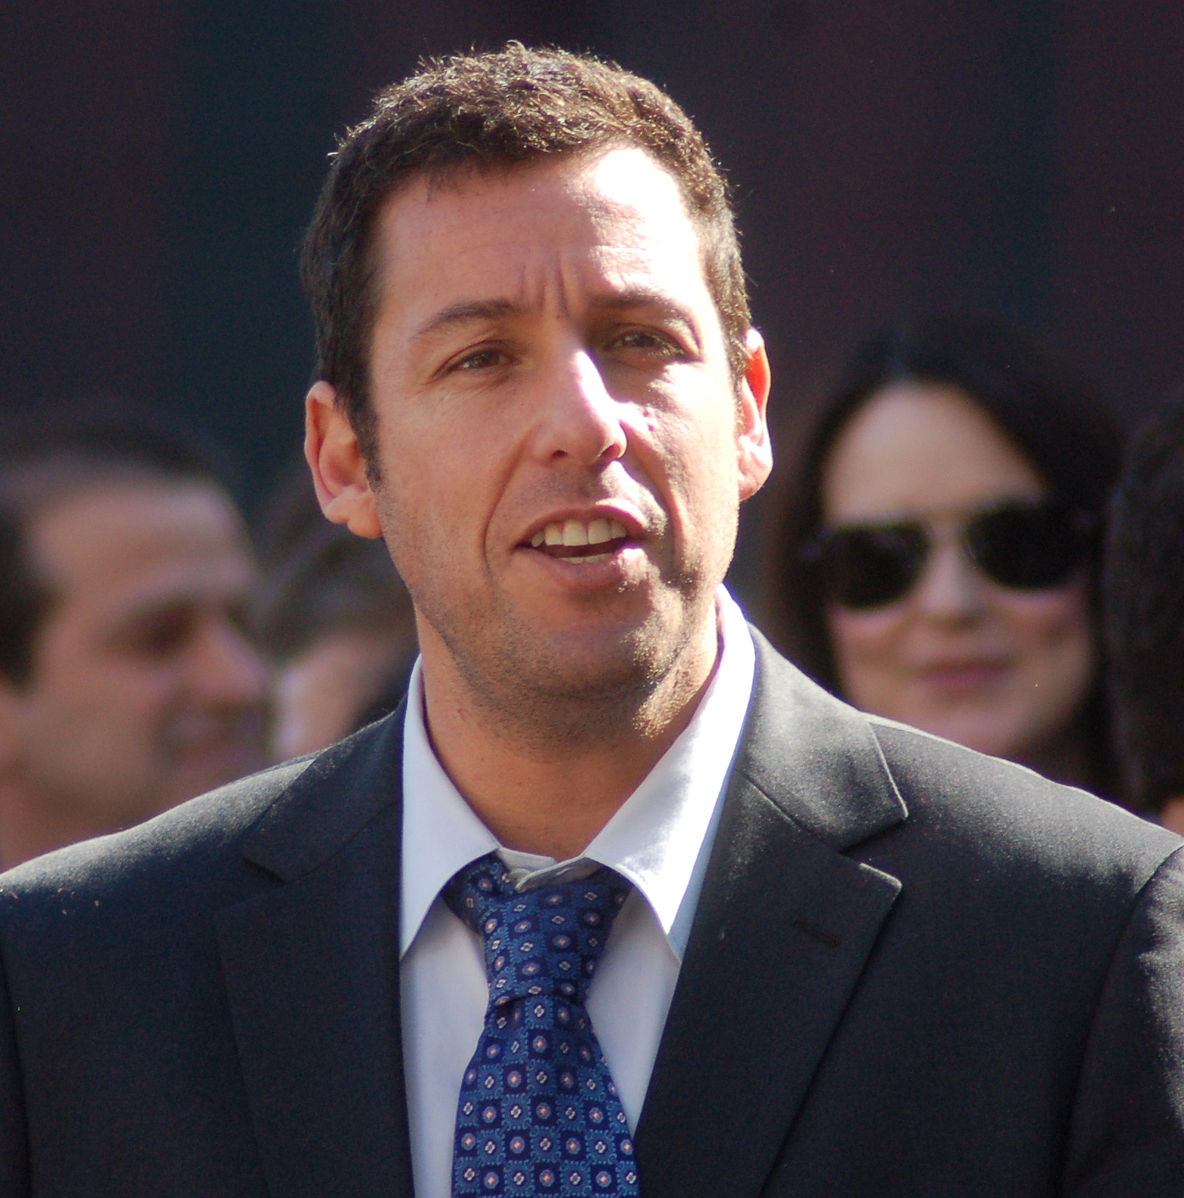 Adam Sandler's New Chanukah Song Arrives In Time For Hanukkah